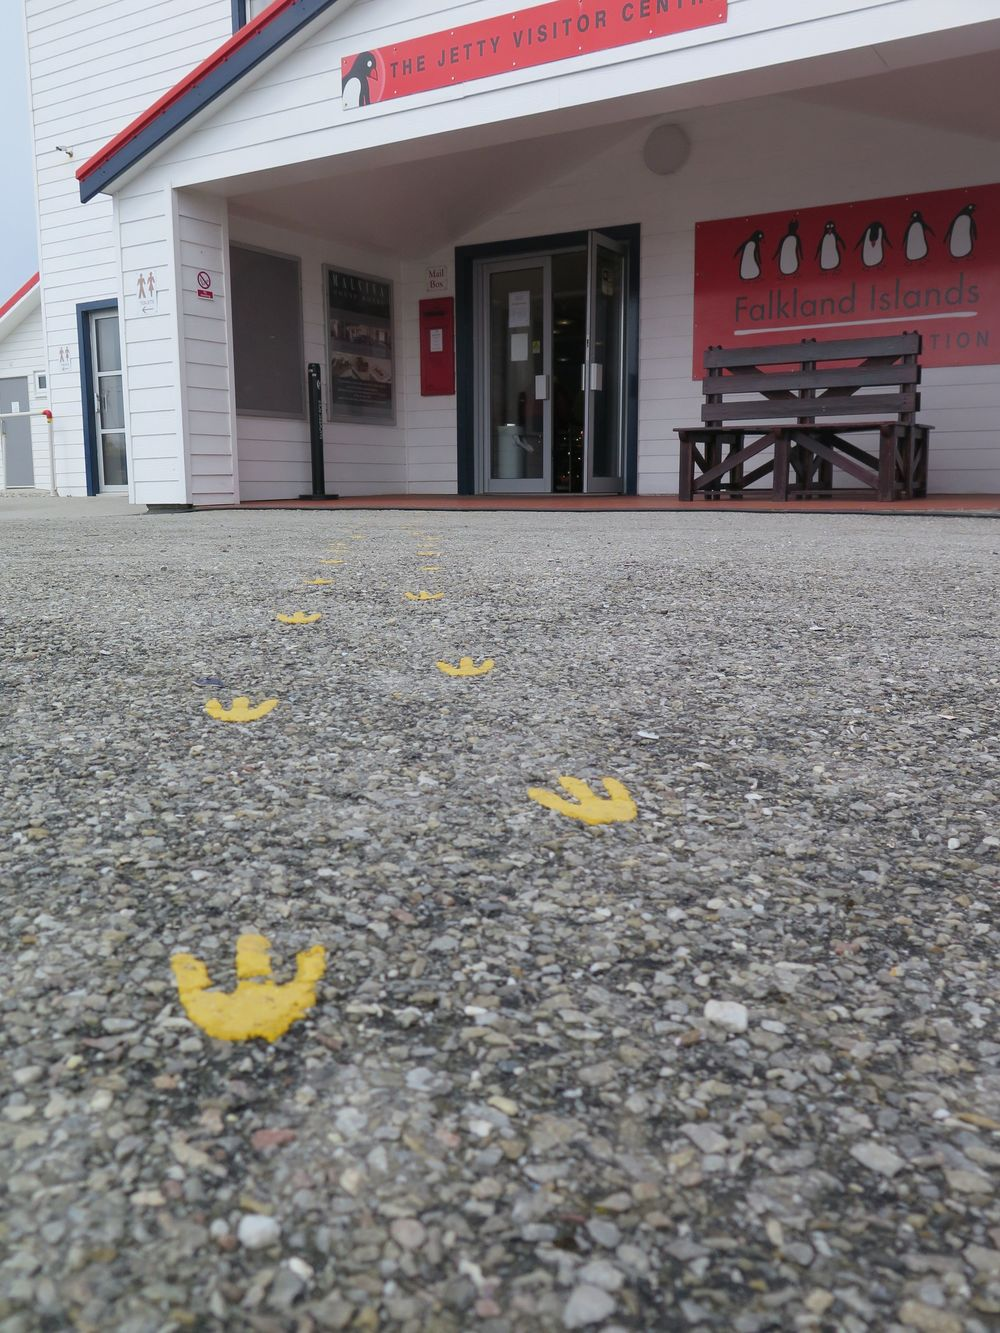 In Stanley all penguin tracks lead to the visitors' center...